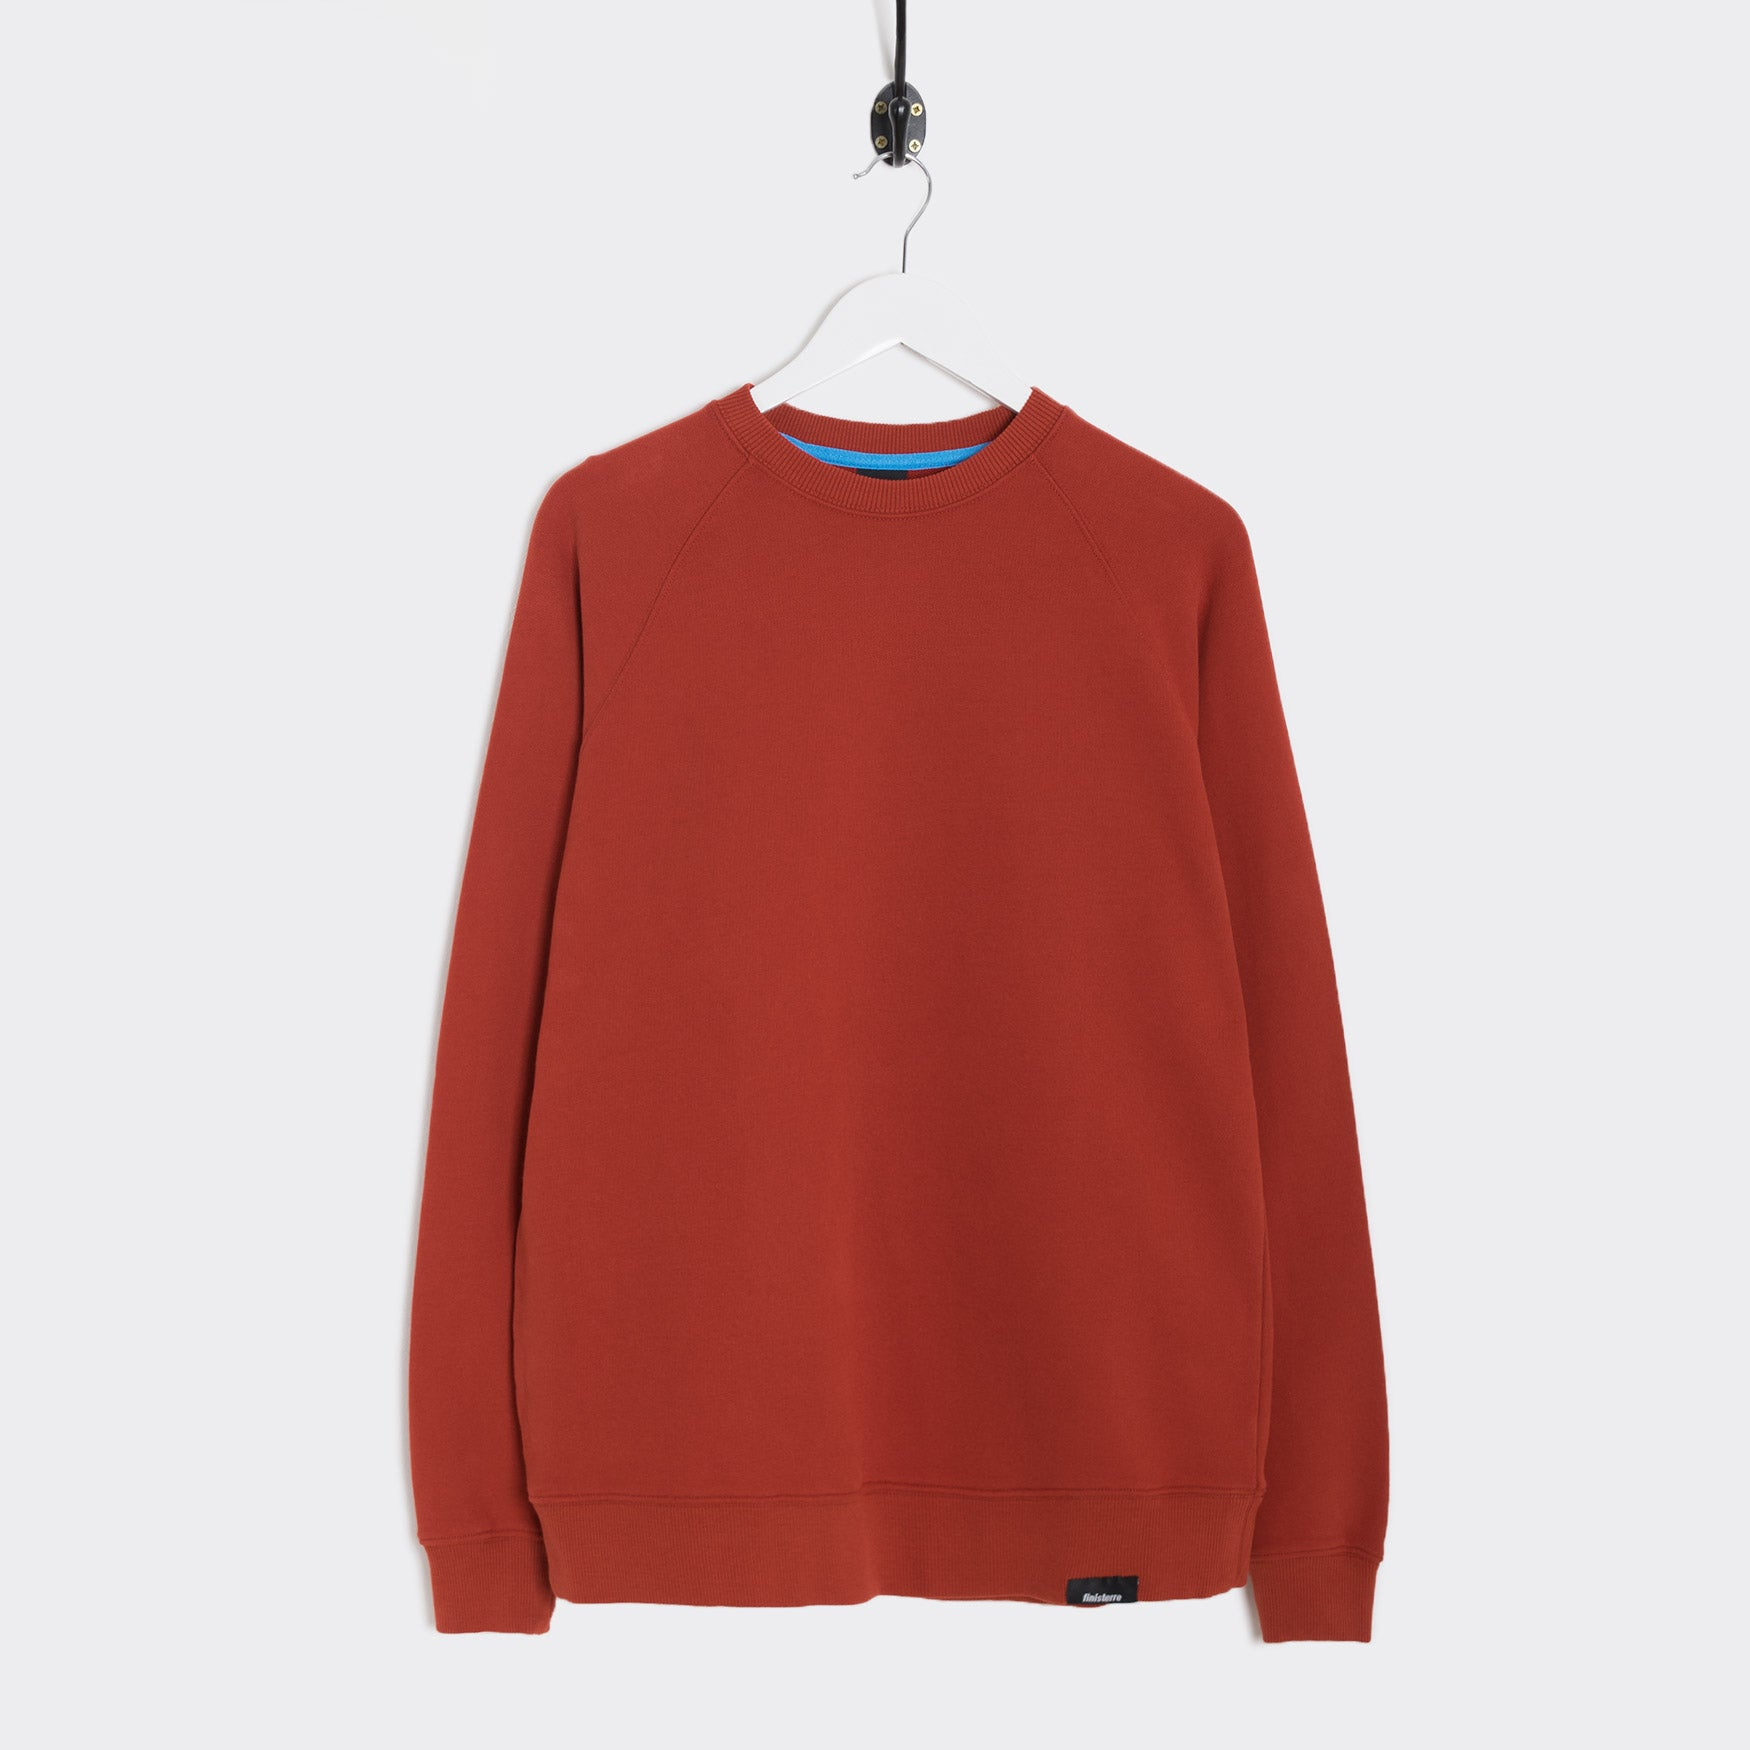 Finisterre Coho Sweatshirt - Red Clay